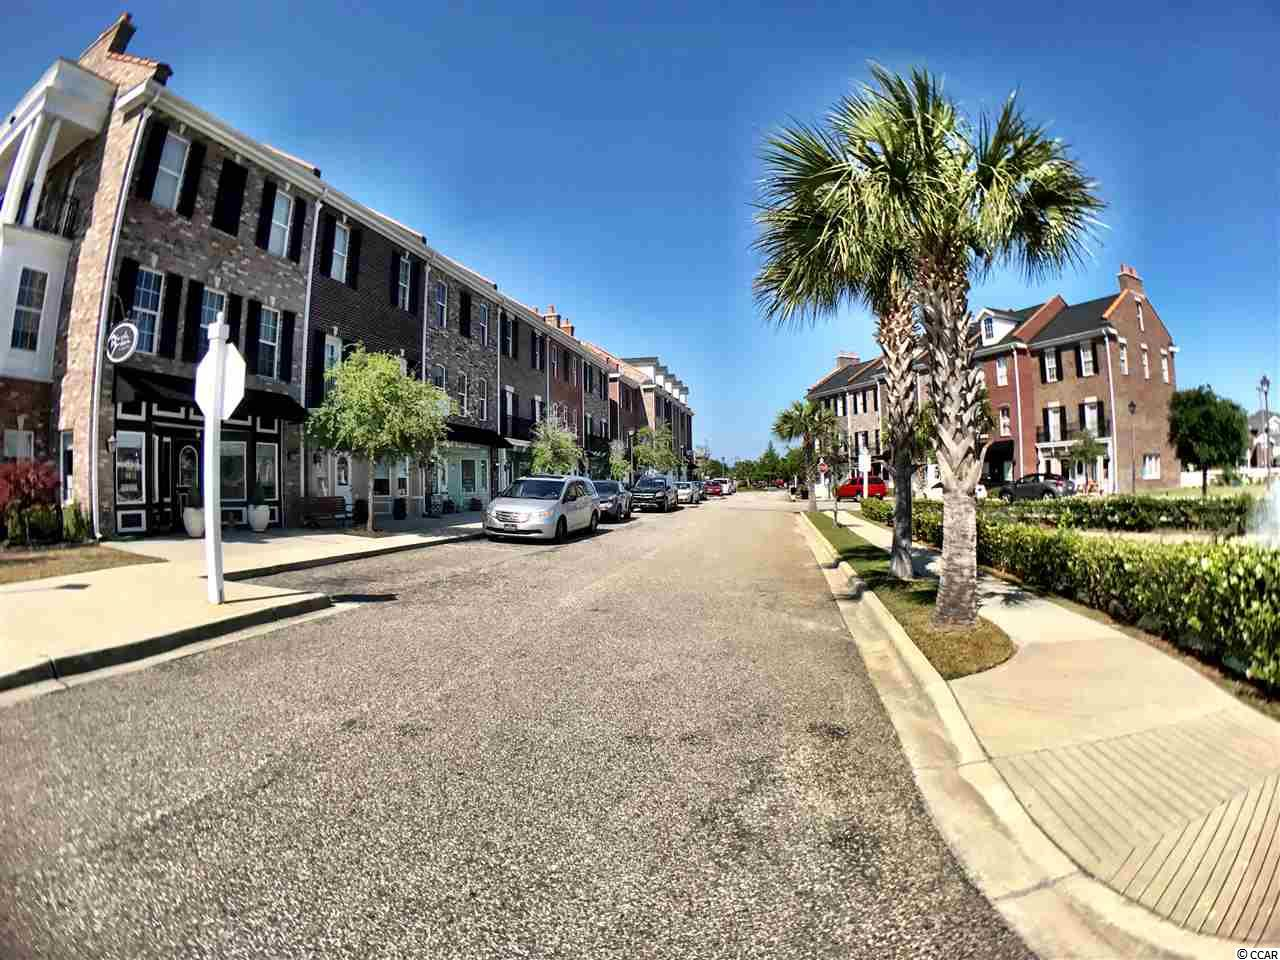 3 bedroom  St. James Square - Myrtle Beach condo for sale